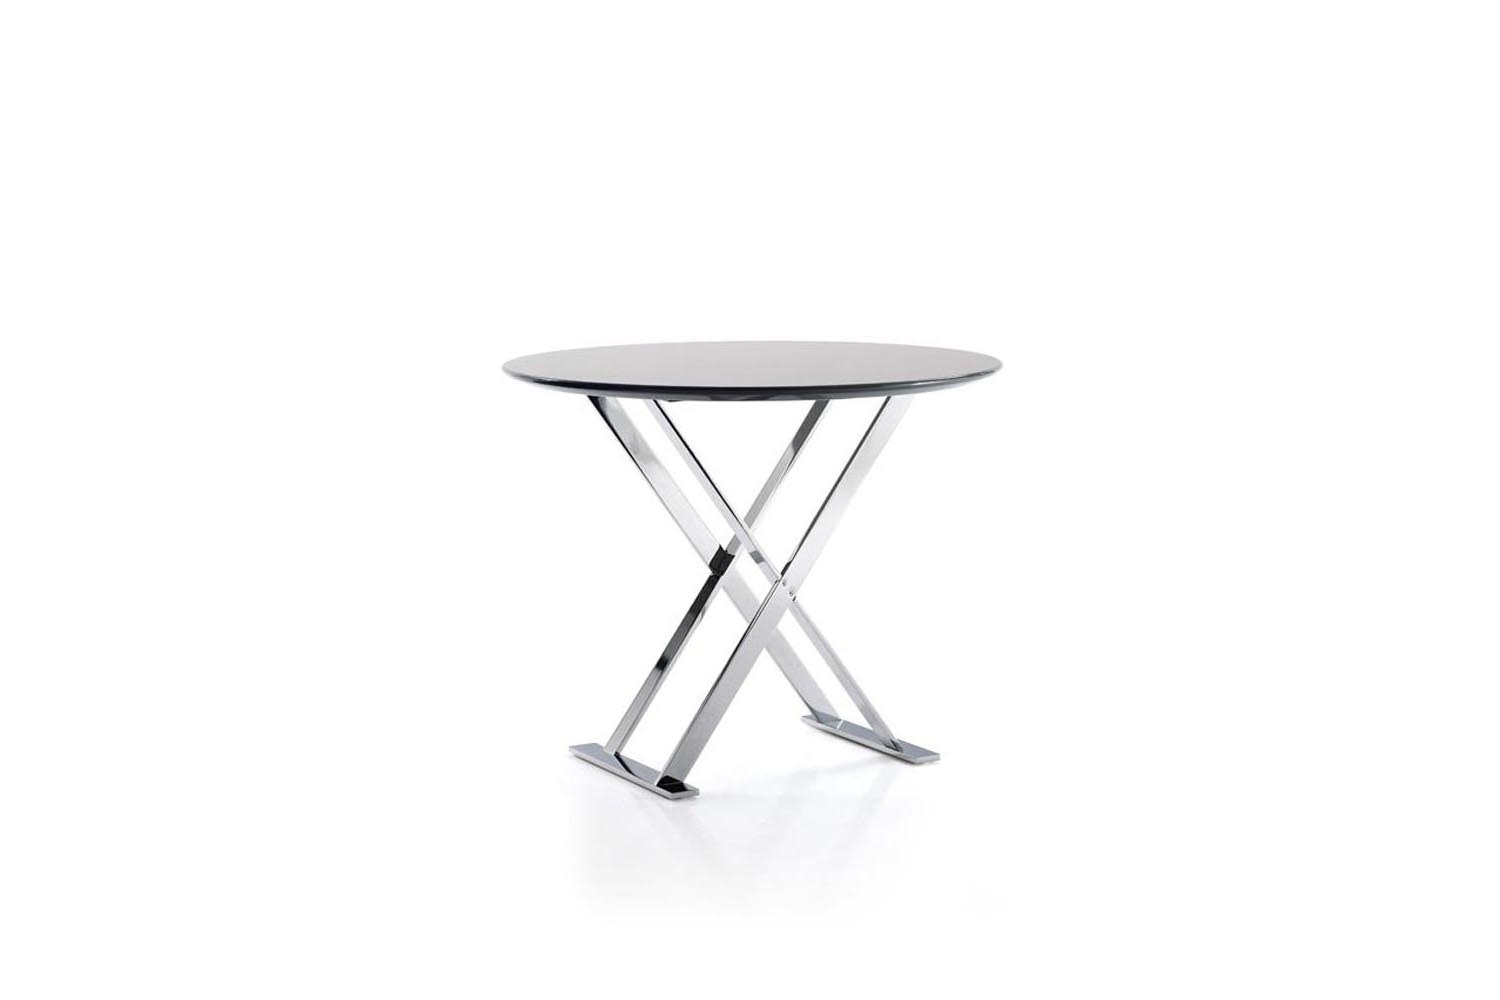 Pathos Coffee Table by Antonio Citterio for Maxalto